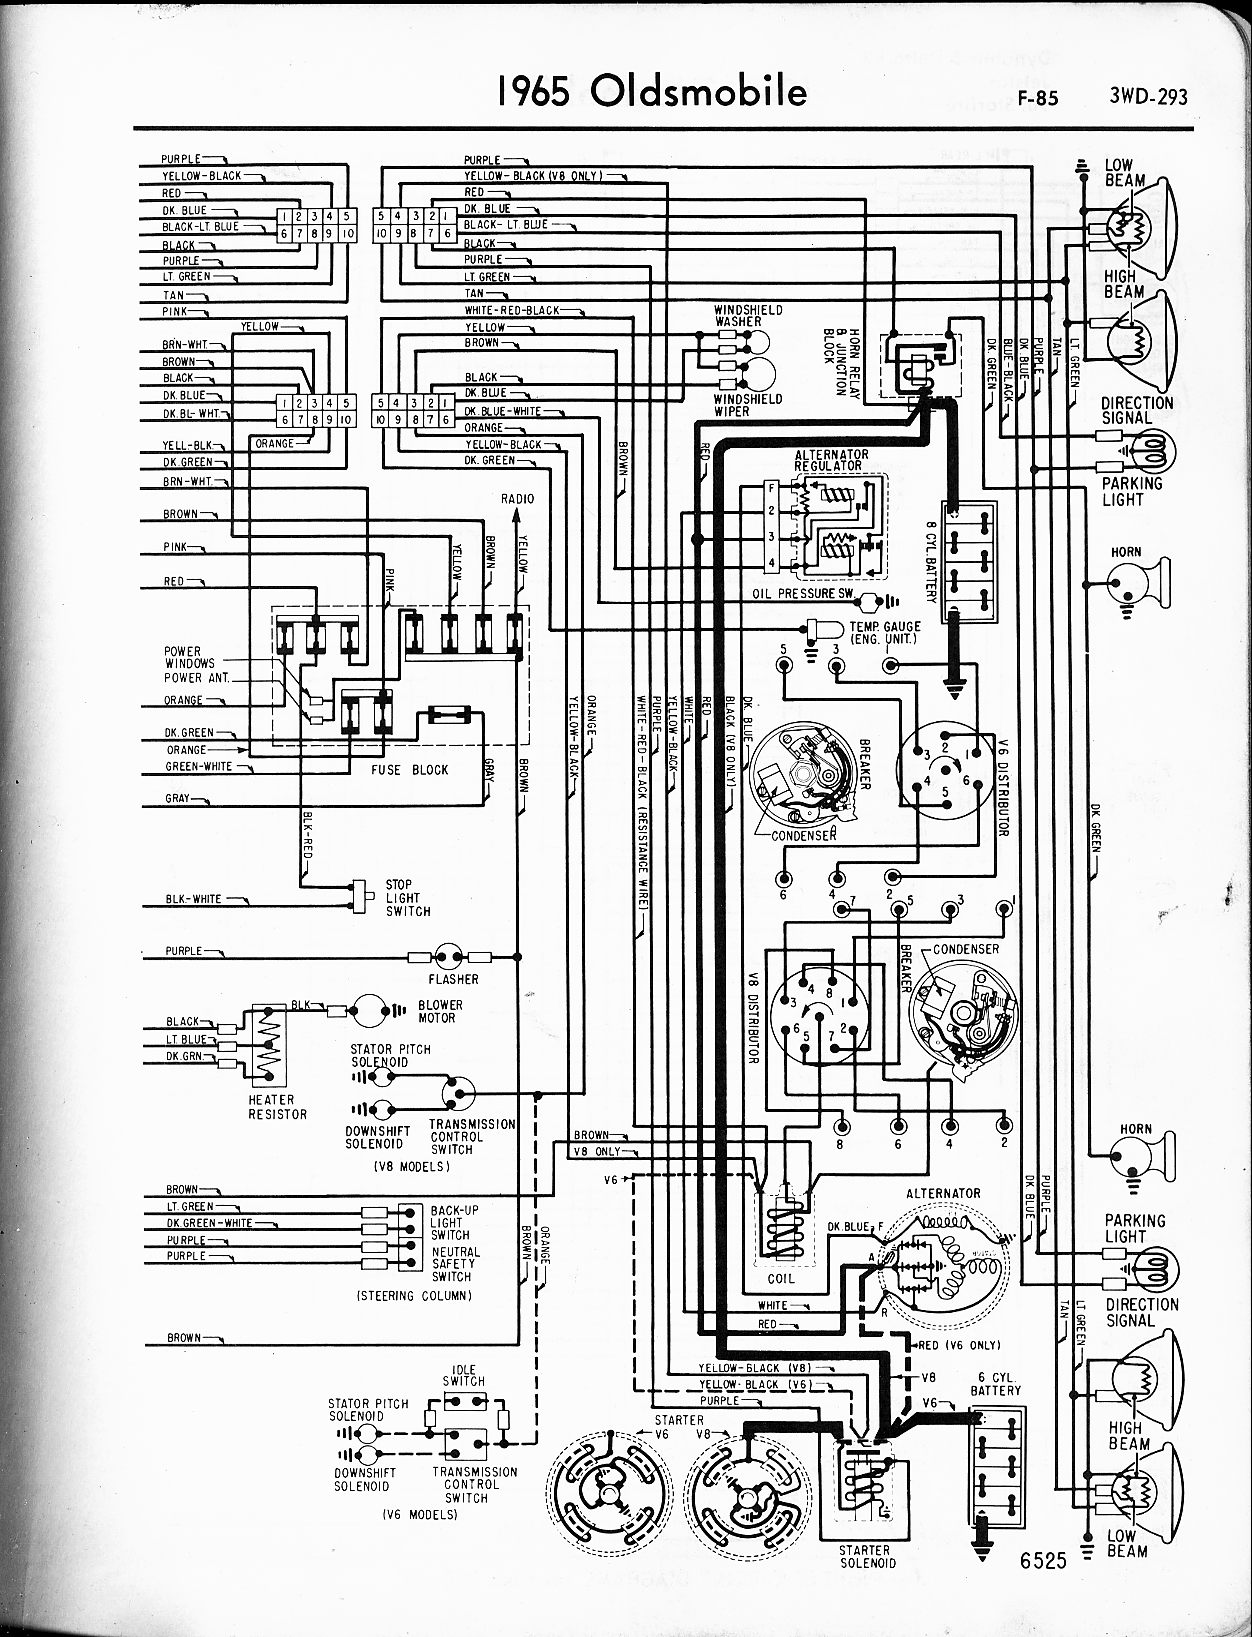 oldsmobile engine diagrams oldsmobile wiring diagrams - the old car manual project oldsmobile engine cooling diagram